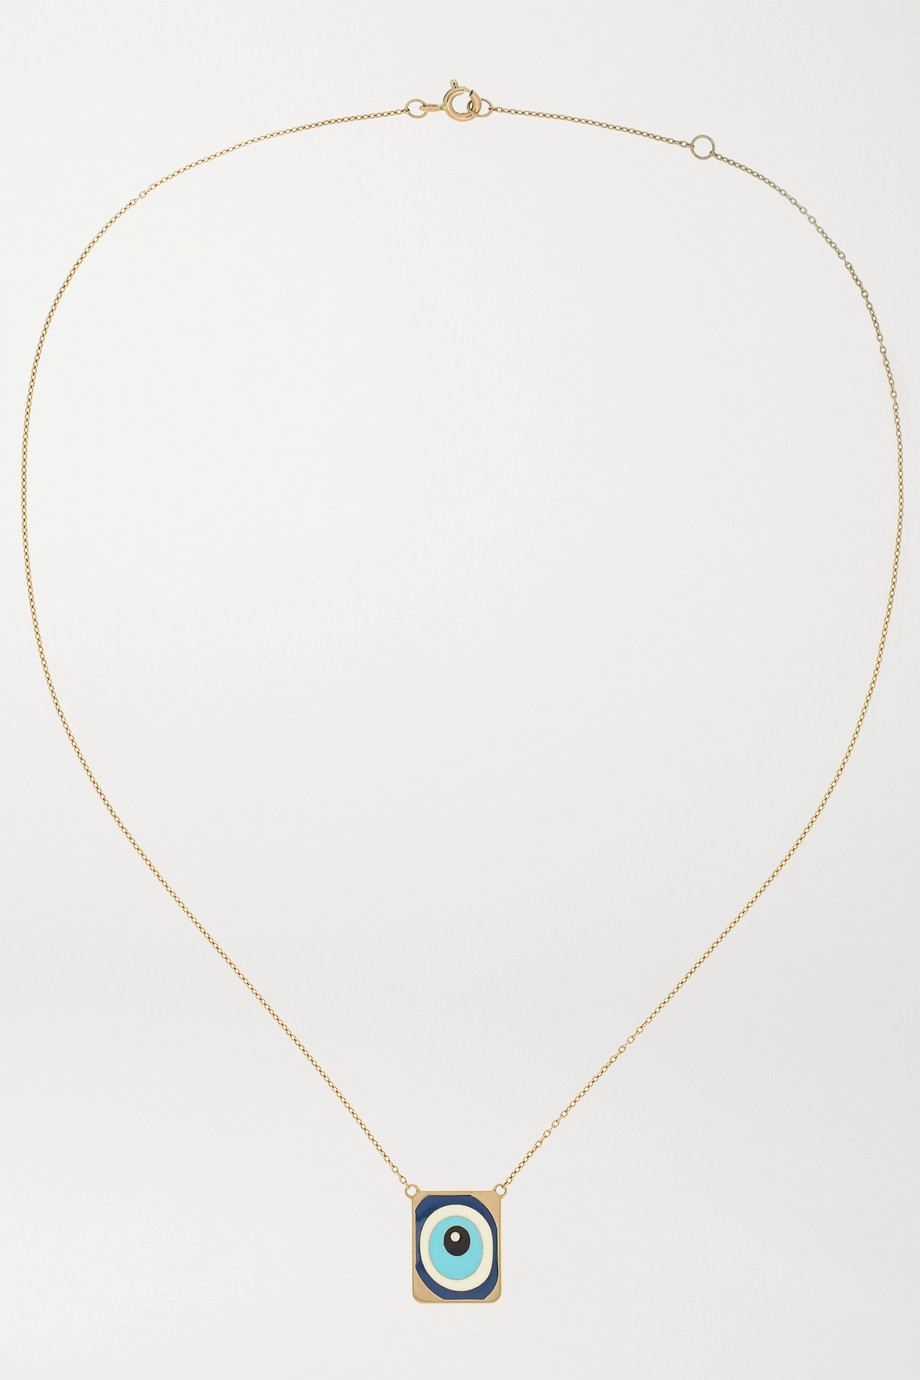 Diane Kordas 18-karat rose gold, enamel and diamond necklace